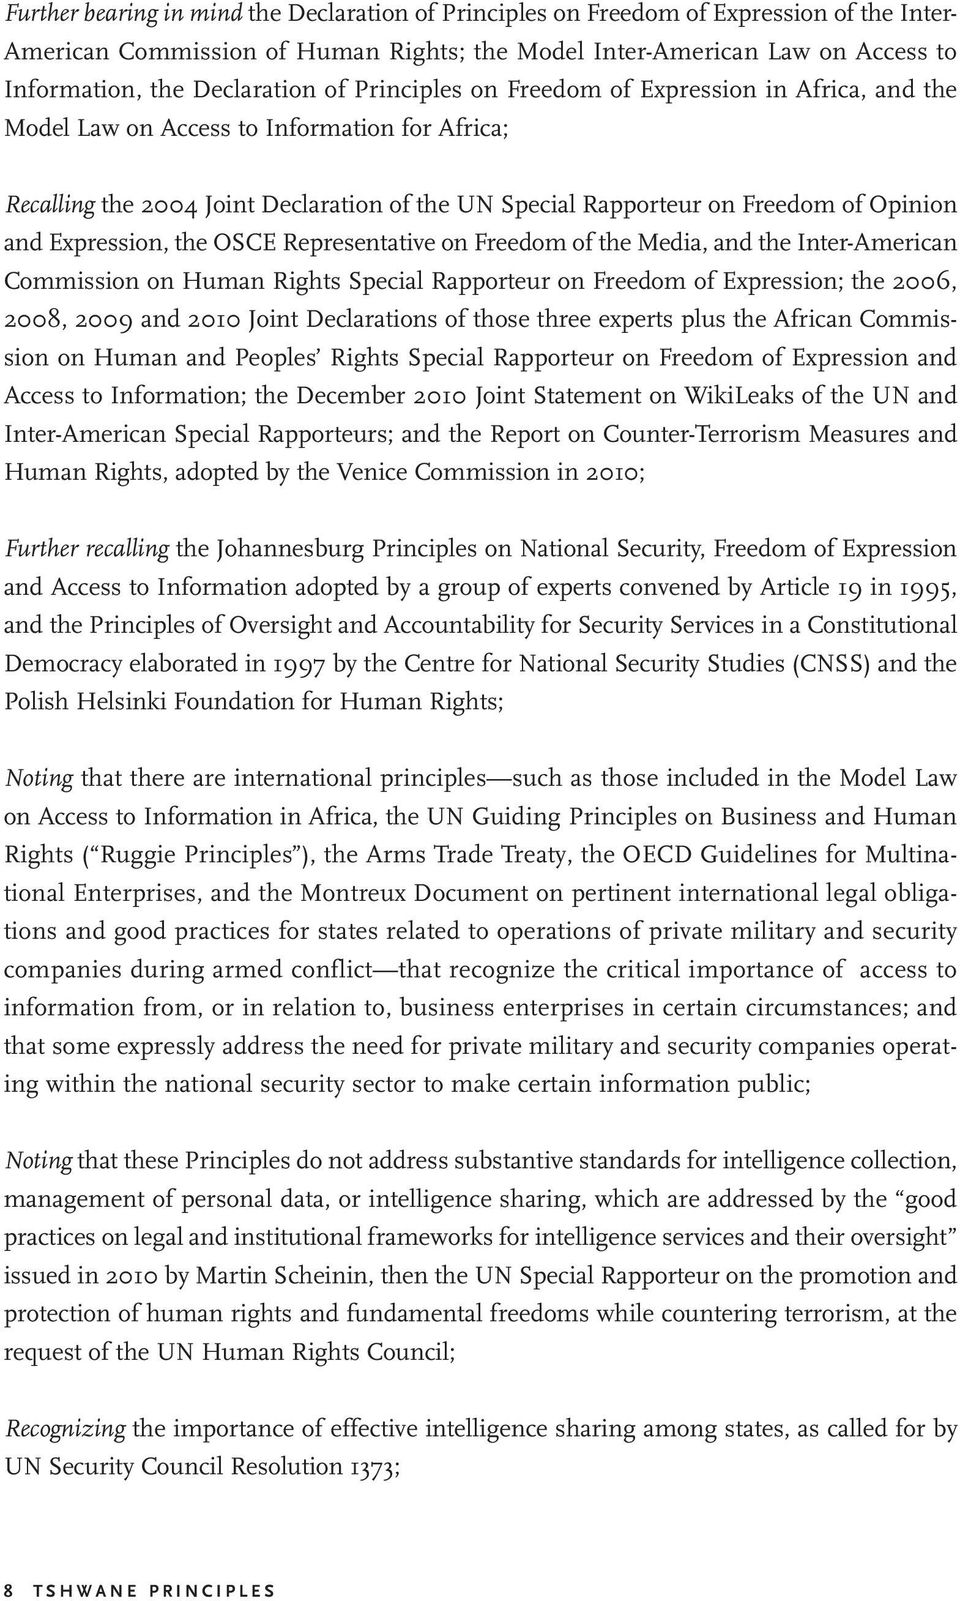 Opinion and Expression, the OSCE Representative on Freedom of the Media, and the Inter-American Commission on Human Rights Special Rapporteur on Freedom of Expression; the 2006, 2008, 2009 and 2010